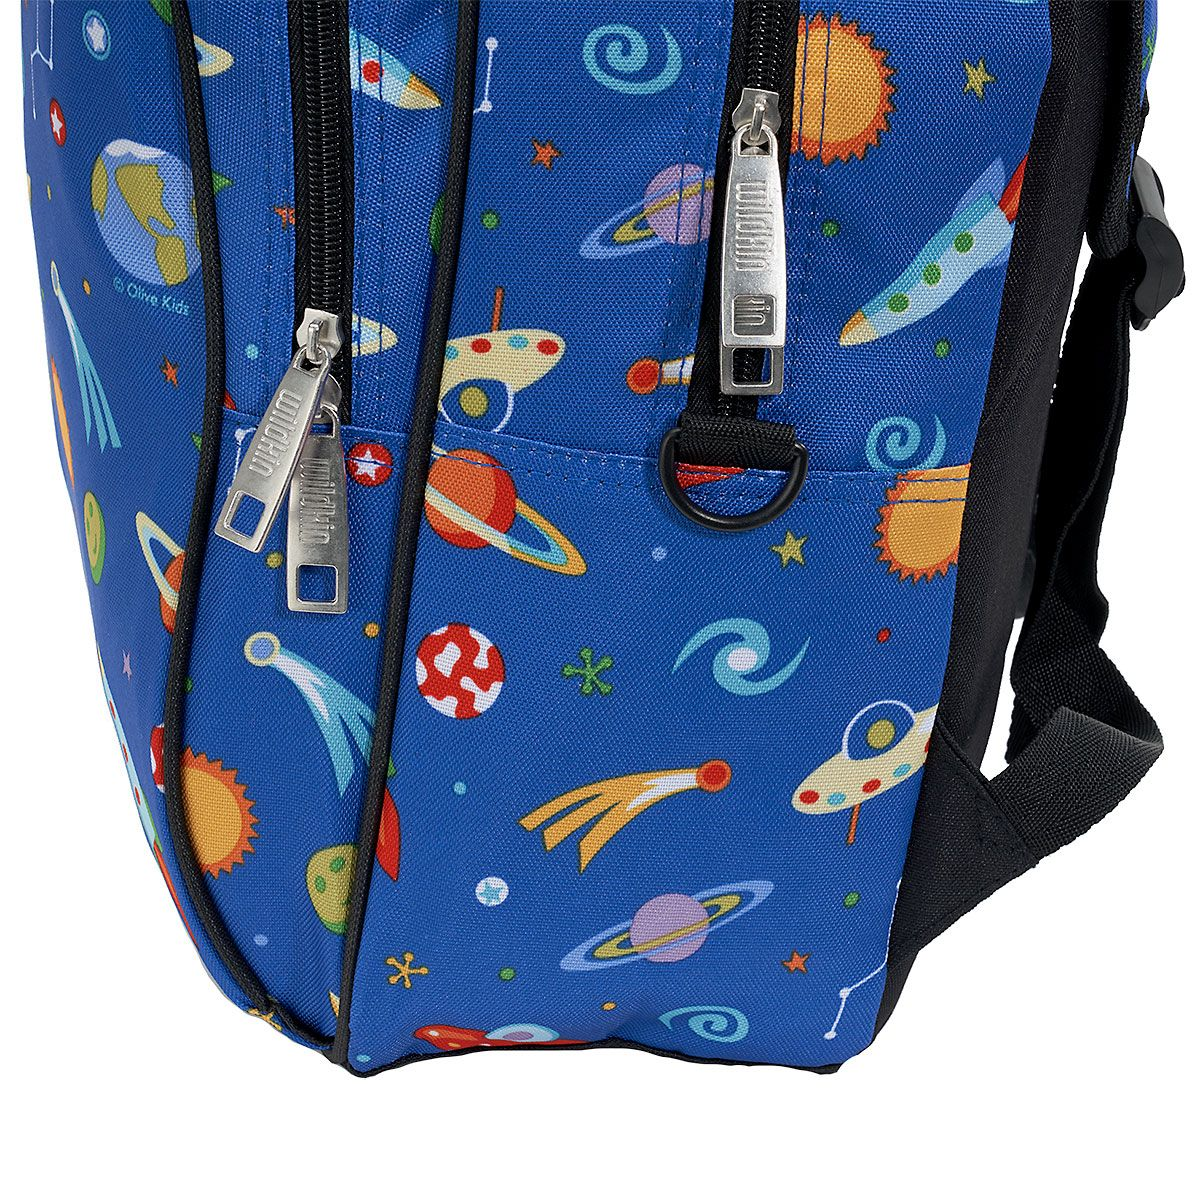 Personalized Out of this World Backpack